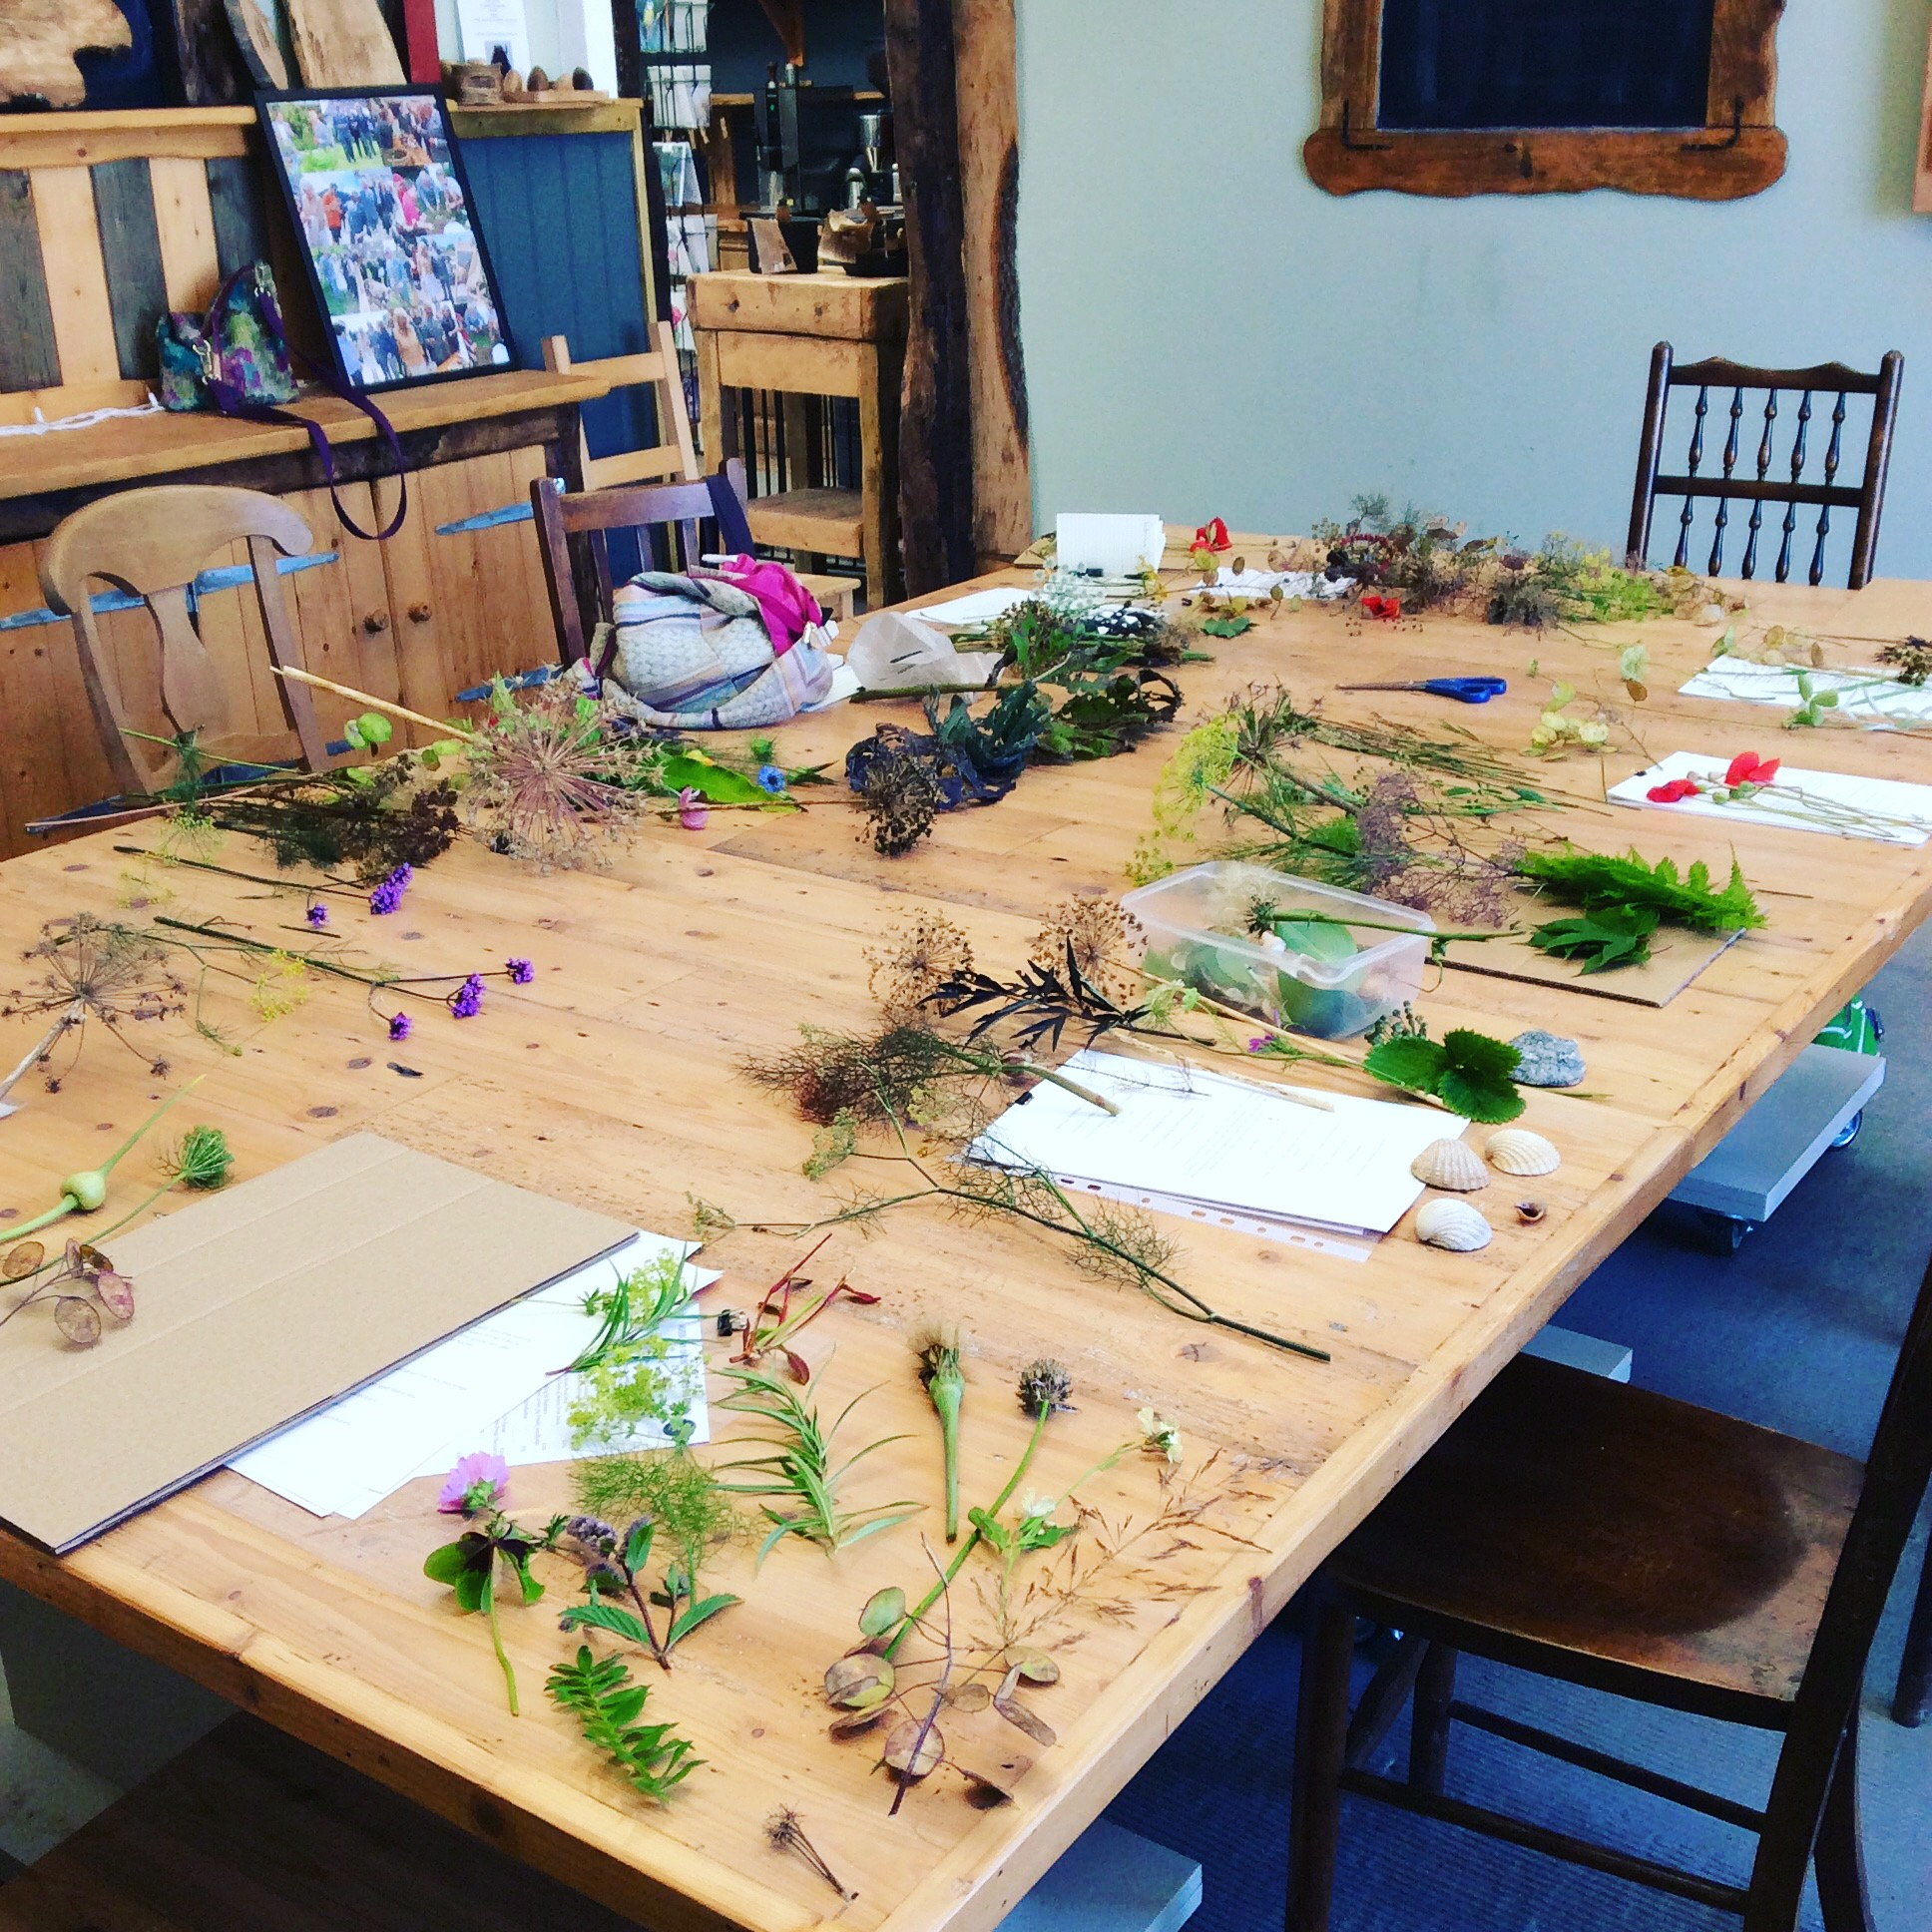 Table with foraged plants, ready for printmaking.